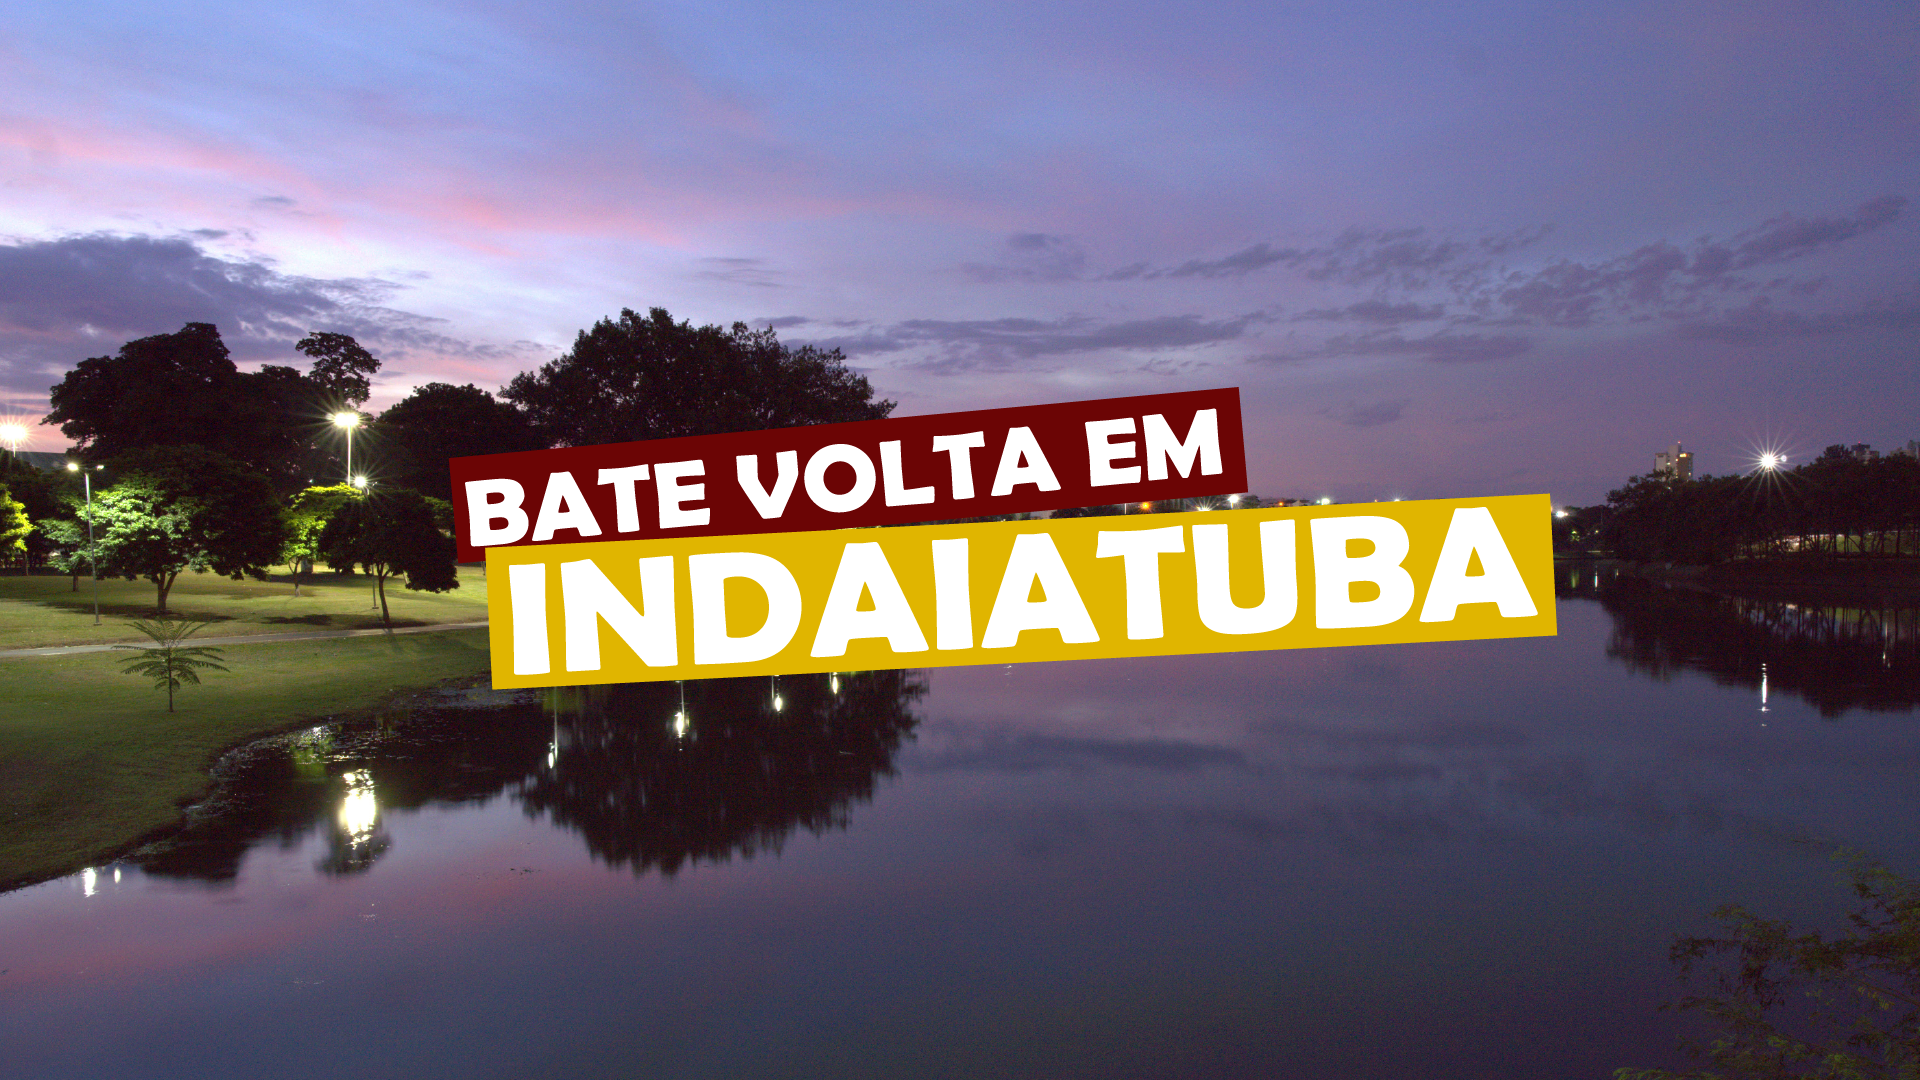 You are currently viewing Bate Volta em Indaiatuba